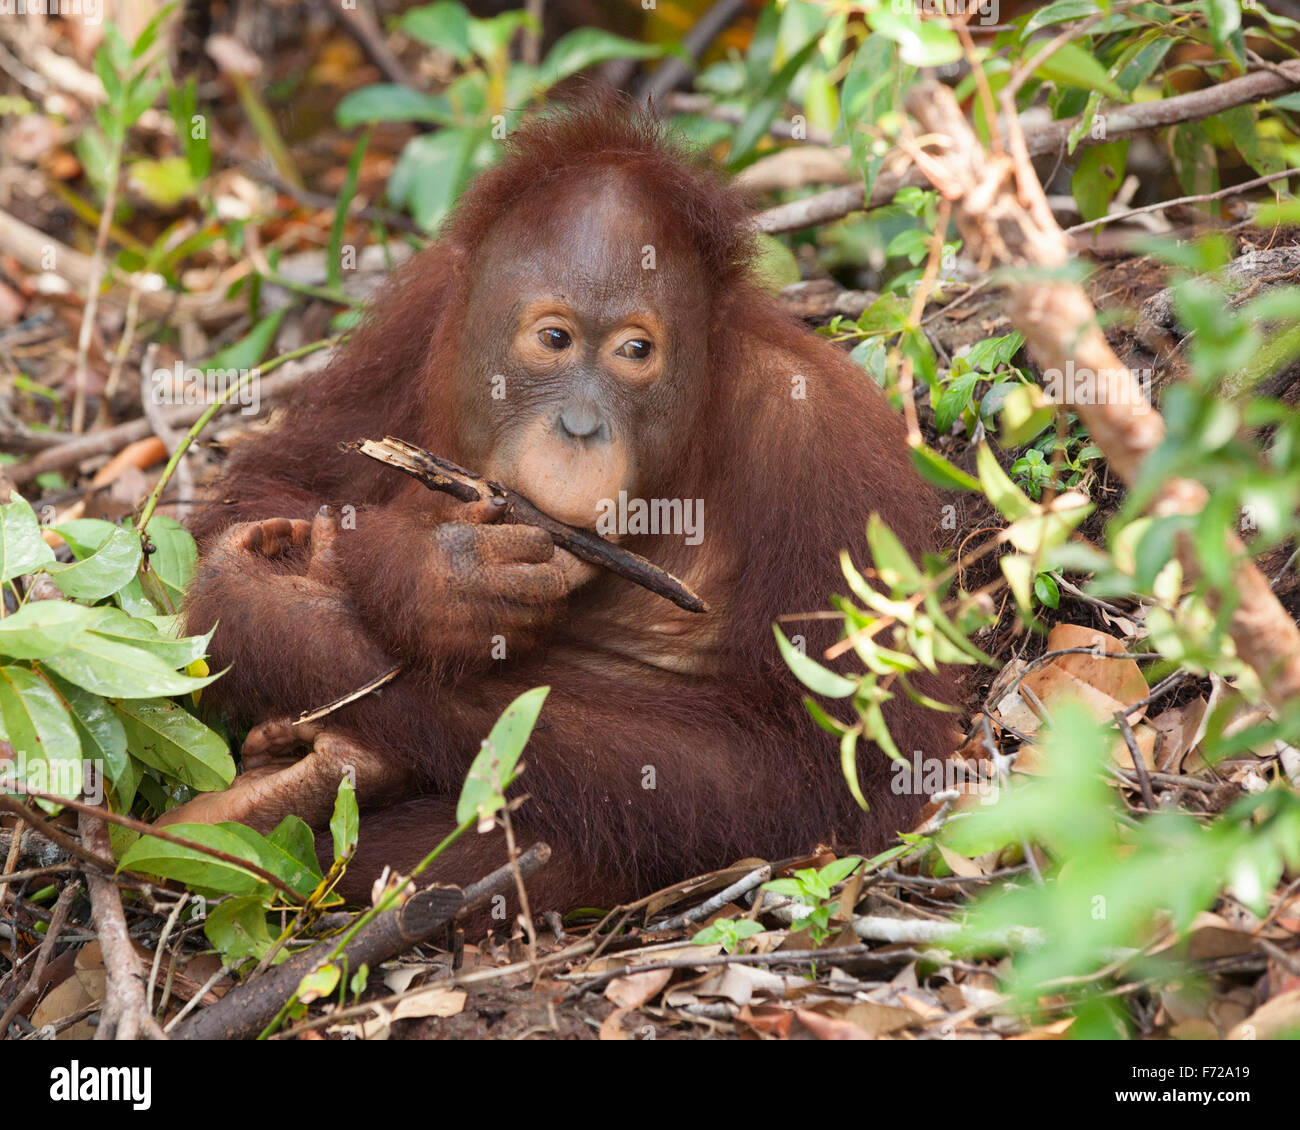 Bornean Orangutan (Pongo pygmaeus) chewing on branch while sitting in forest - Stock Image